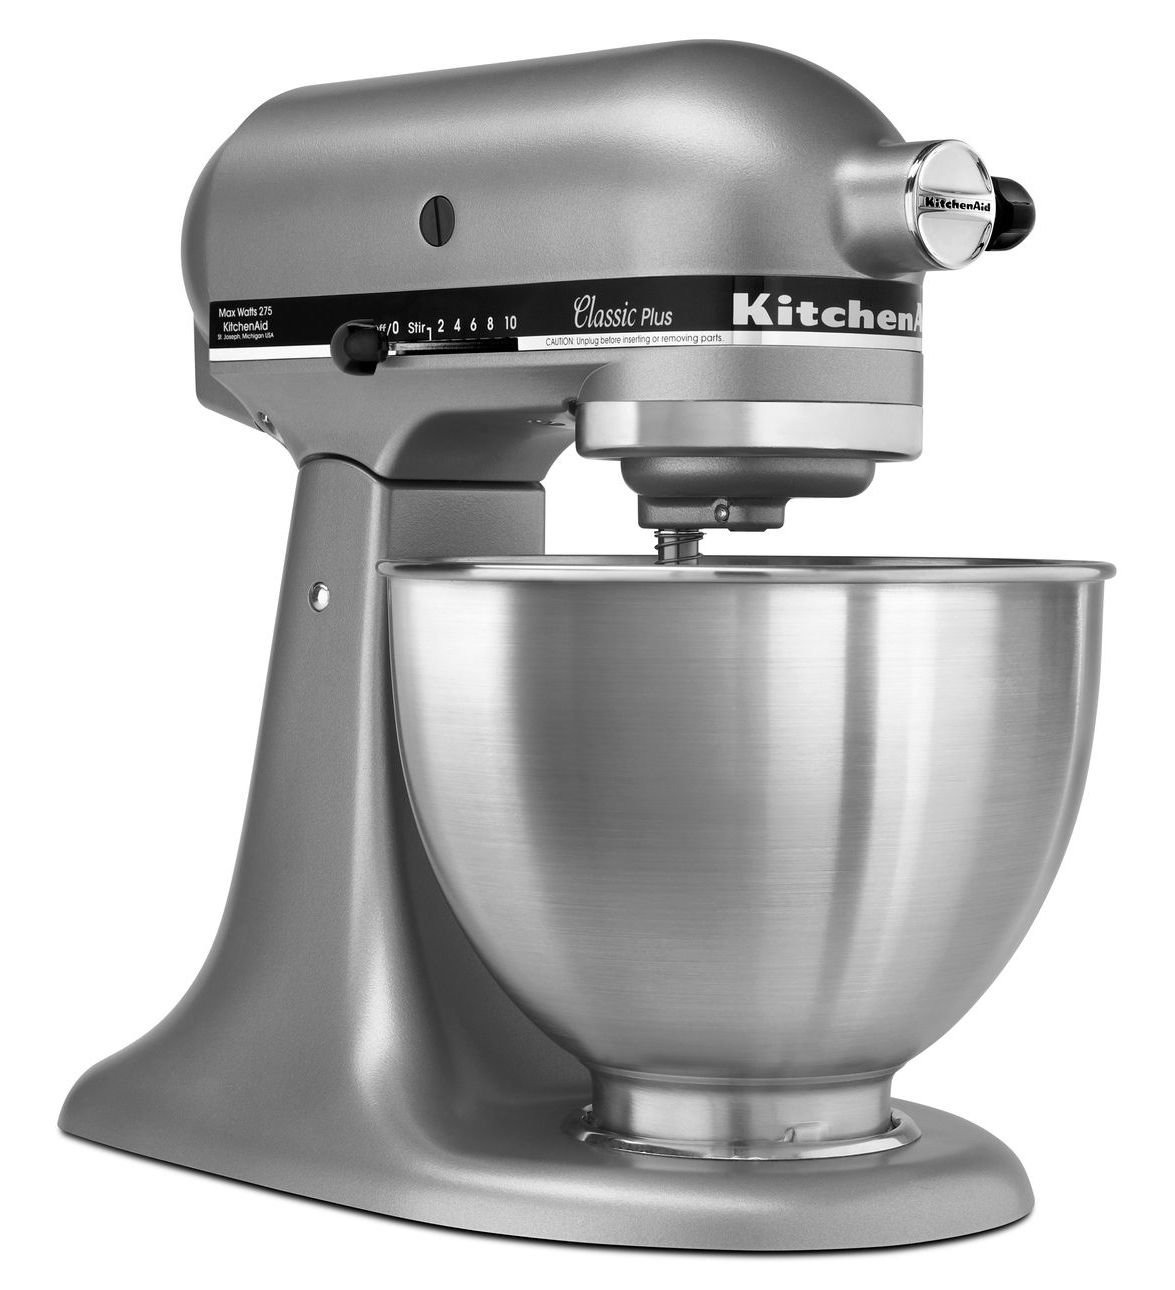 Beau Amazon.com: KitchenAid KSM75SL Classic Plus 4.5 Qt. Tilt Head Stand Mixer,  Silver: Electric Stand Mixers: Kitchen U0026 Dining